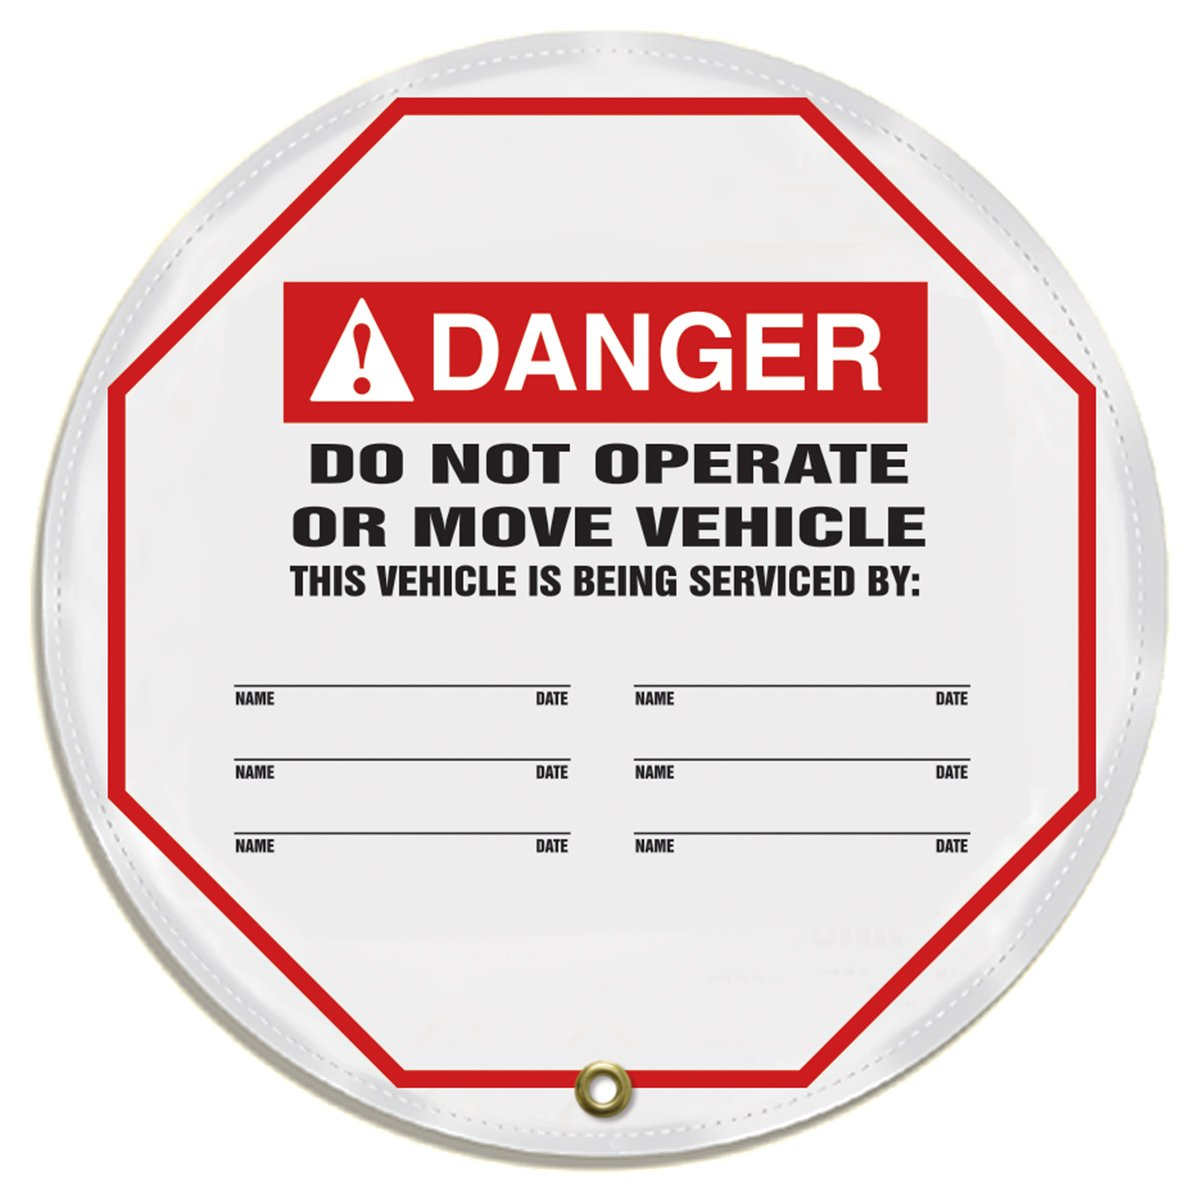 Accuform KDD718 STOPOUT Vinyl Steering Wheel Message Cover, ANSI-Style LegendDanger DO NOT Operate OR Move Vehicle - This Vehicle is Being SERVICED by:, 16, Red/Black on White